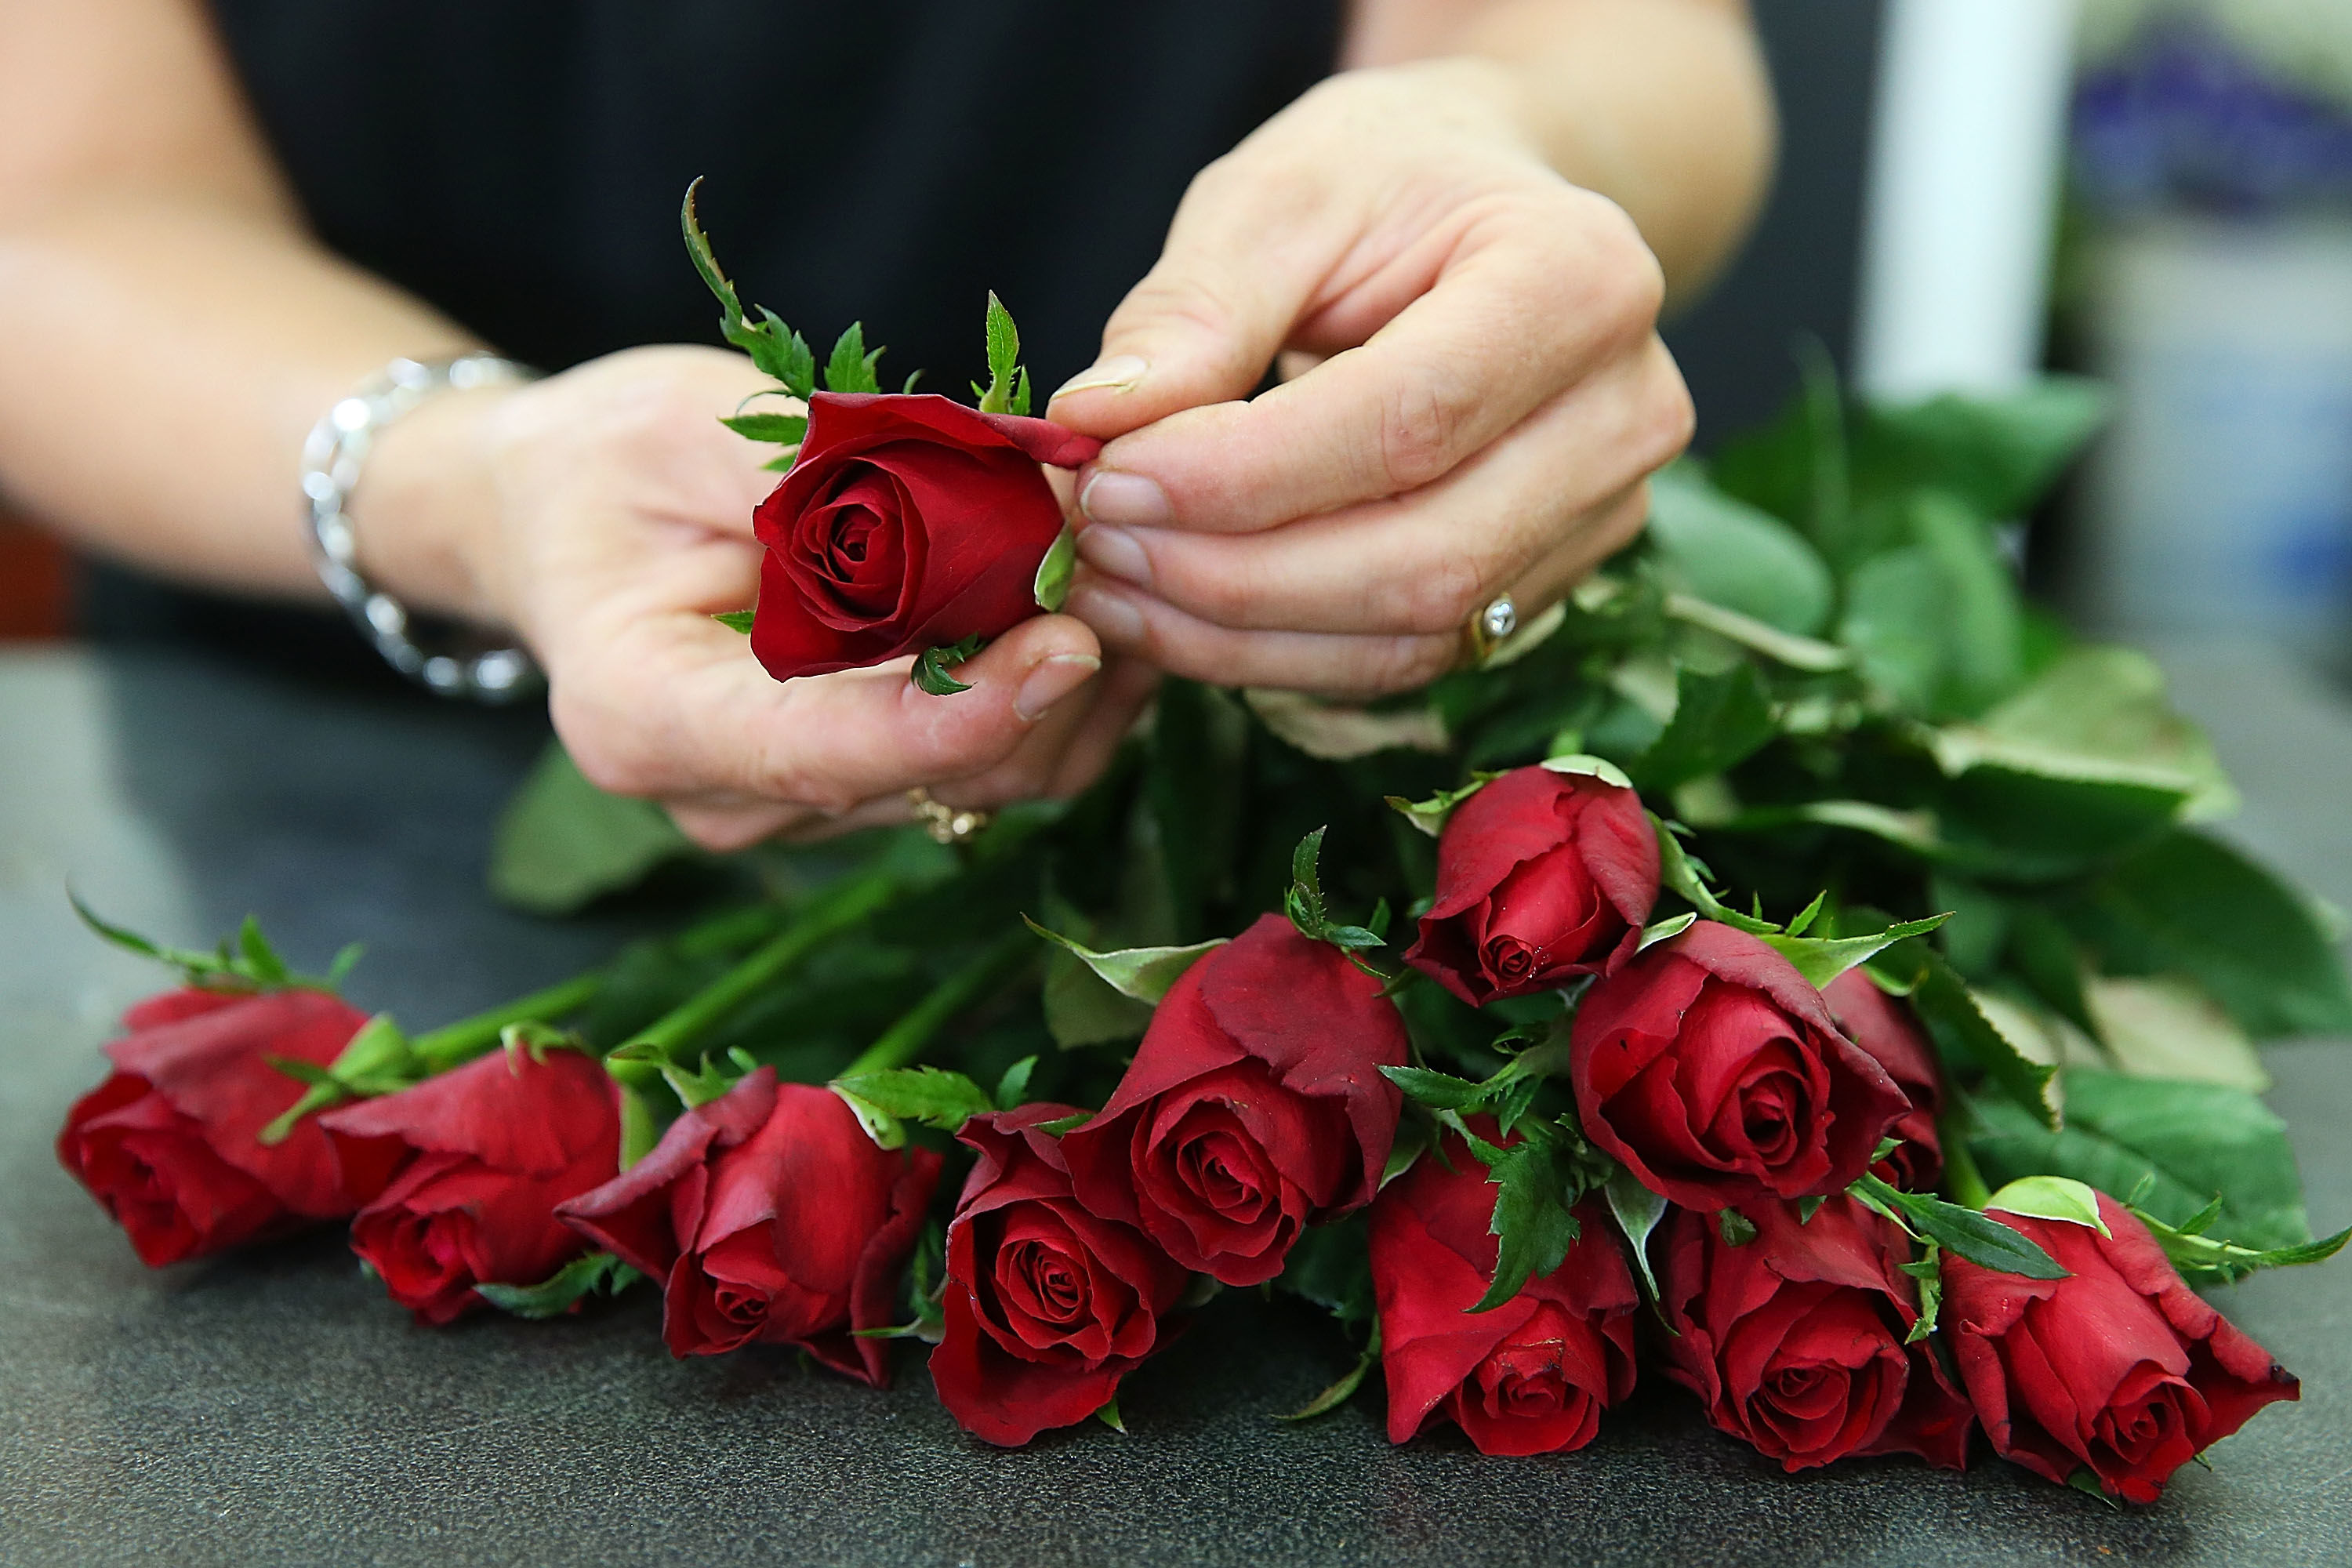 Amazon's Free Two-Hour Flower Delivery Could Save Your Valentine's Day